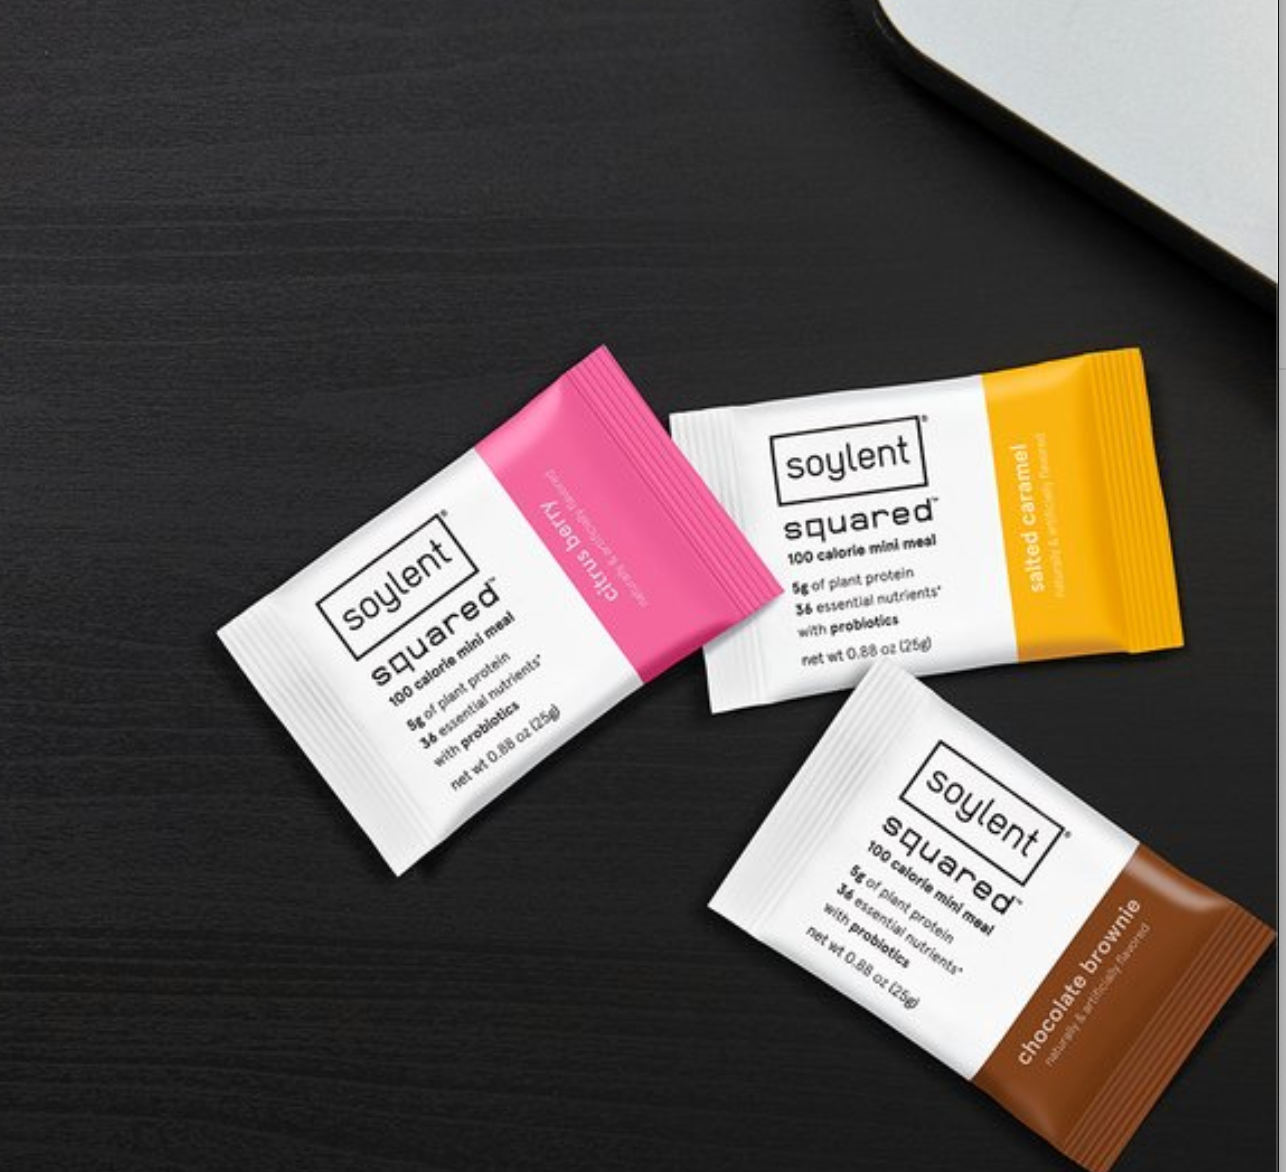 Soylent Squared - A complete 100g mini-meal bar from Soylent